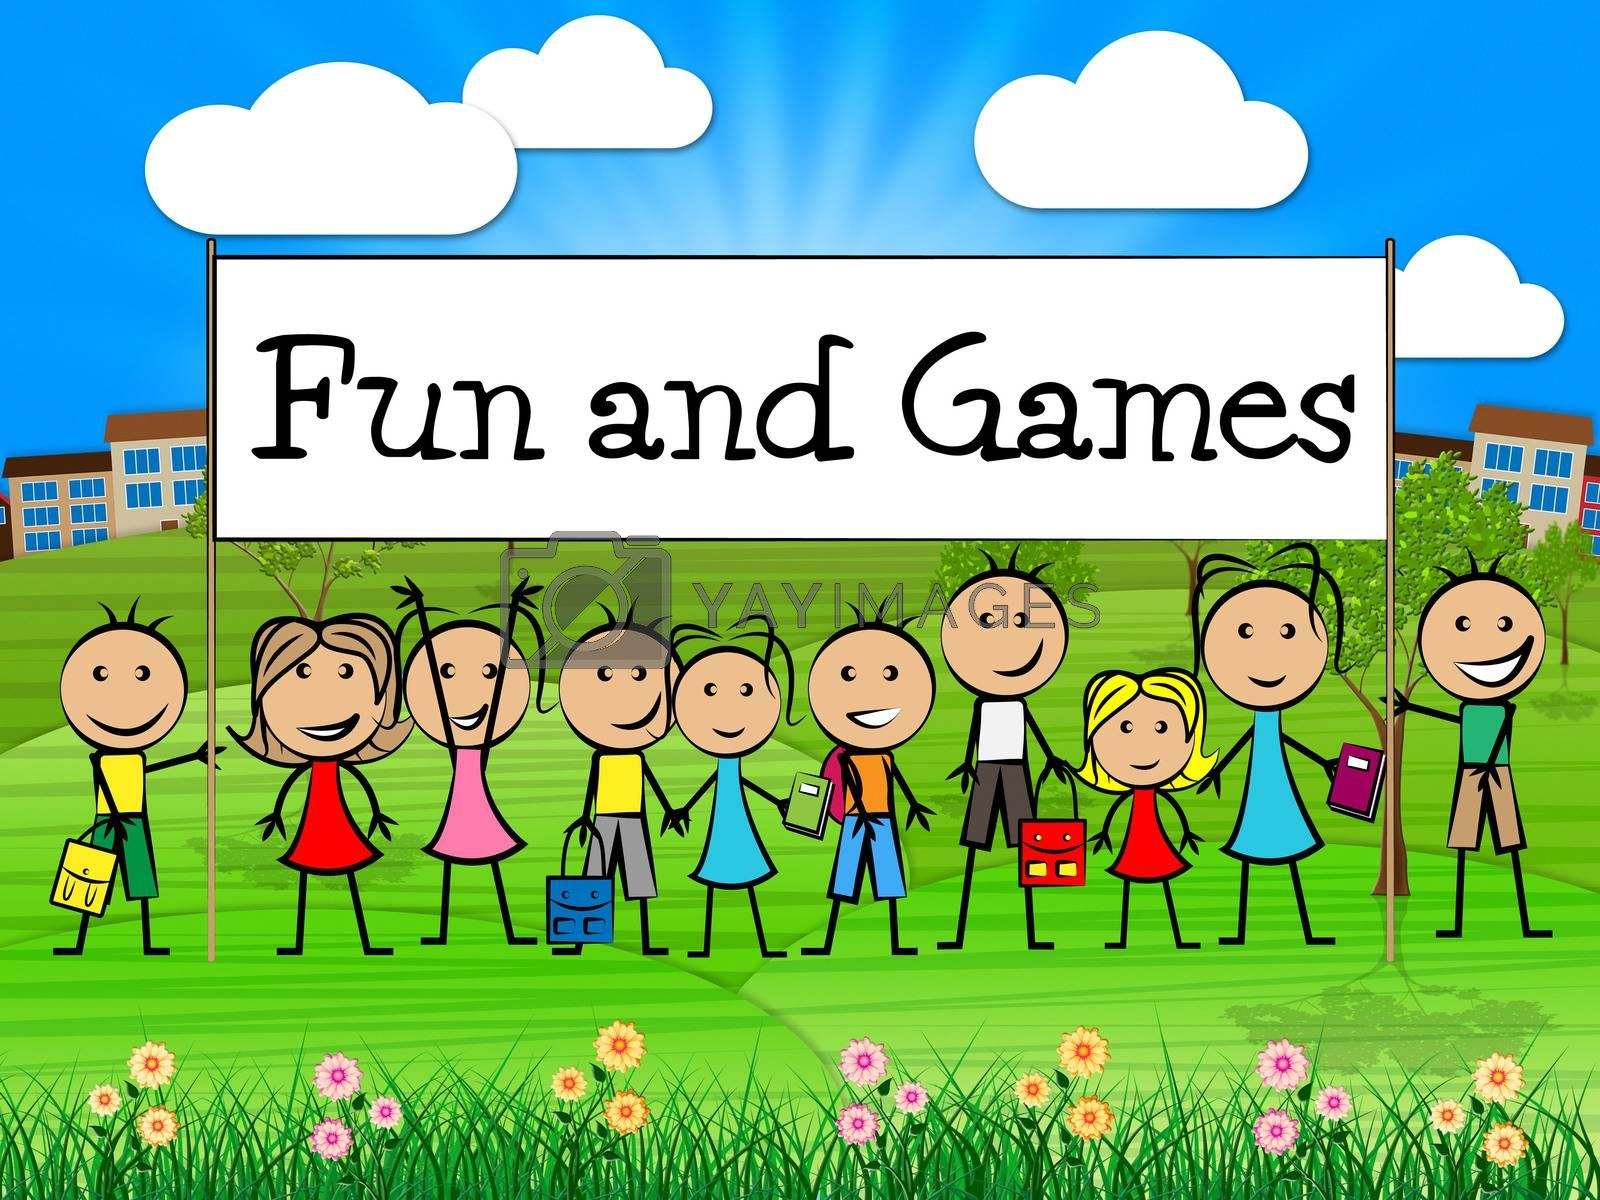 Fun And Games Means Leisure Gaming And Kid by stuartmiles